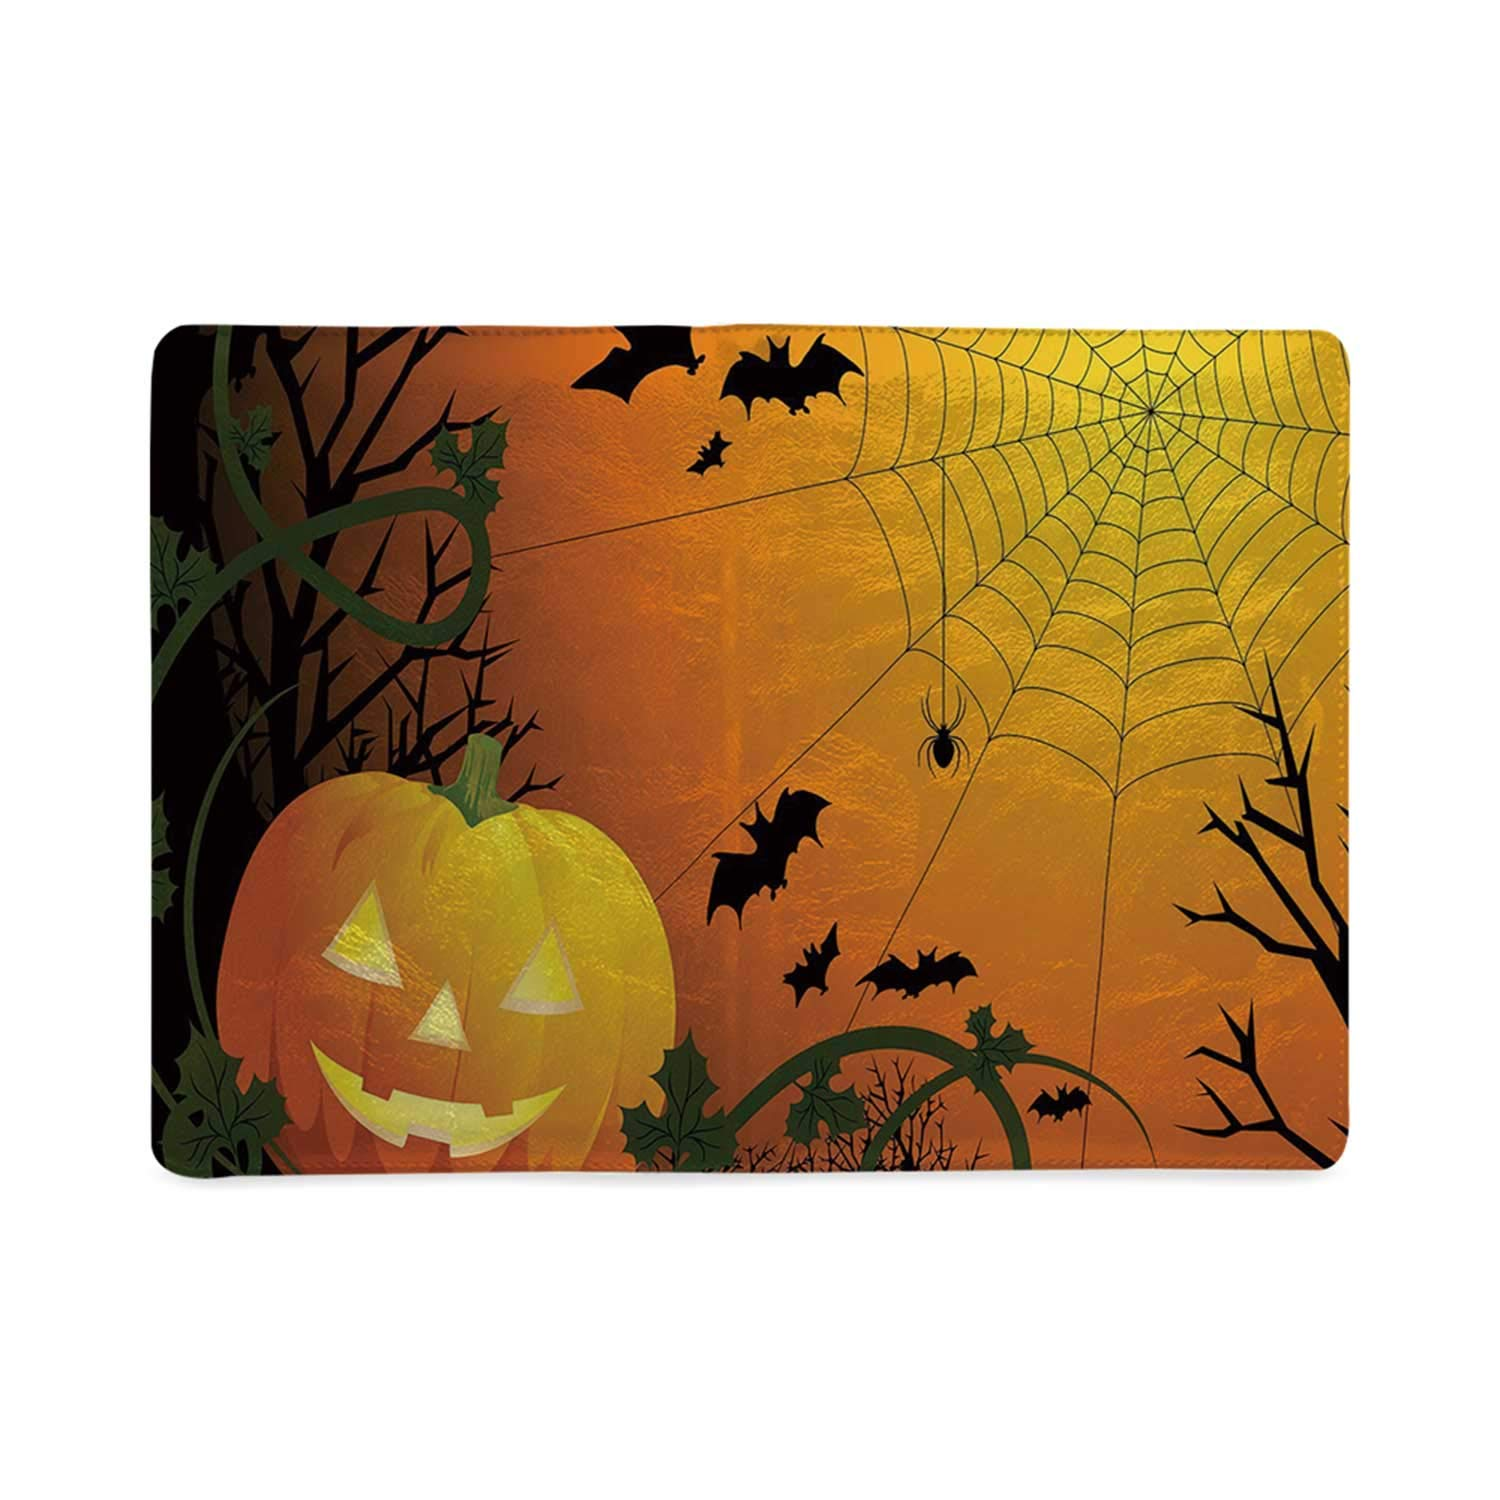 Spider Web Utility Notebooks,Halloween Themed Composition with Pumpkin Leaves Trees Web and Bats Decorative for Work,8.26''W x 10.86''H by MOOCOM